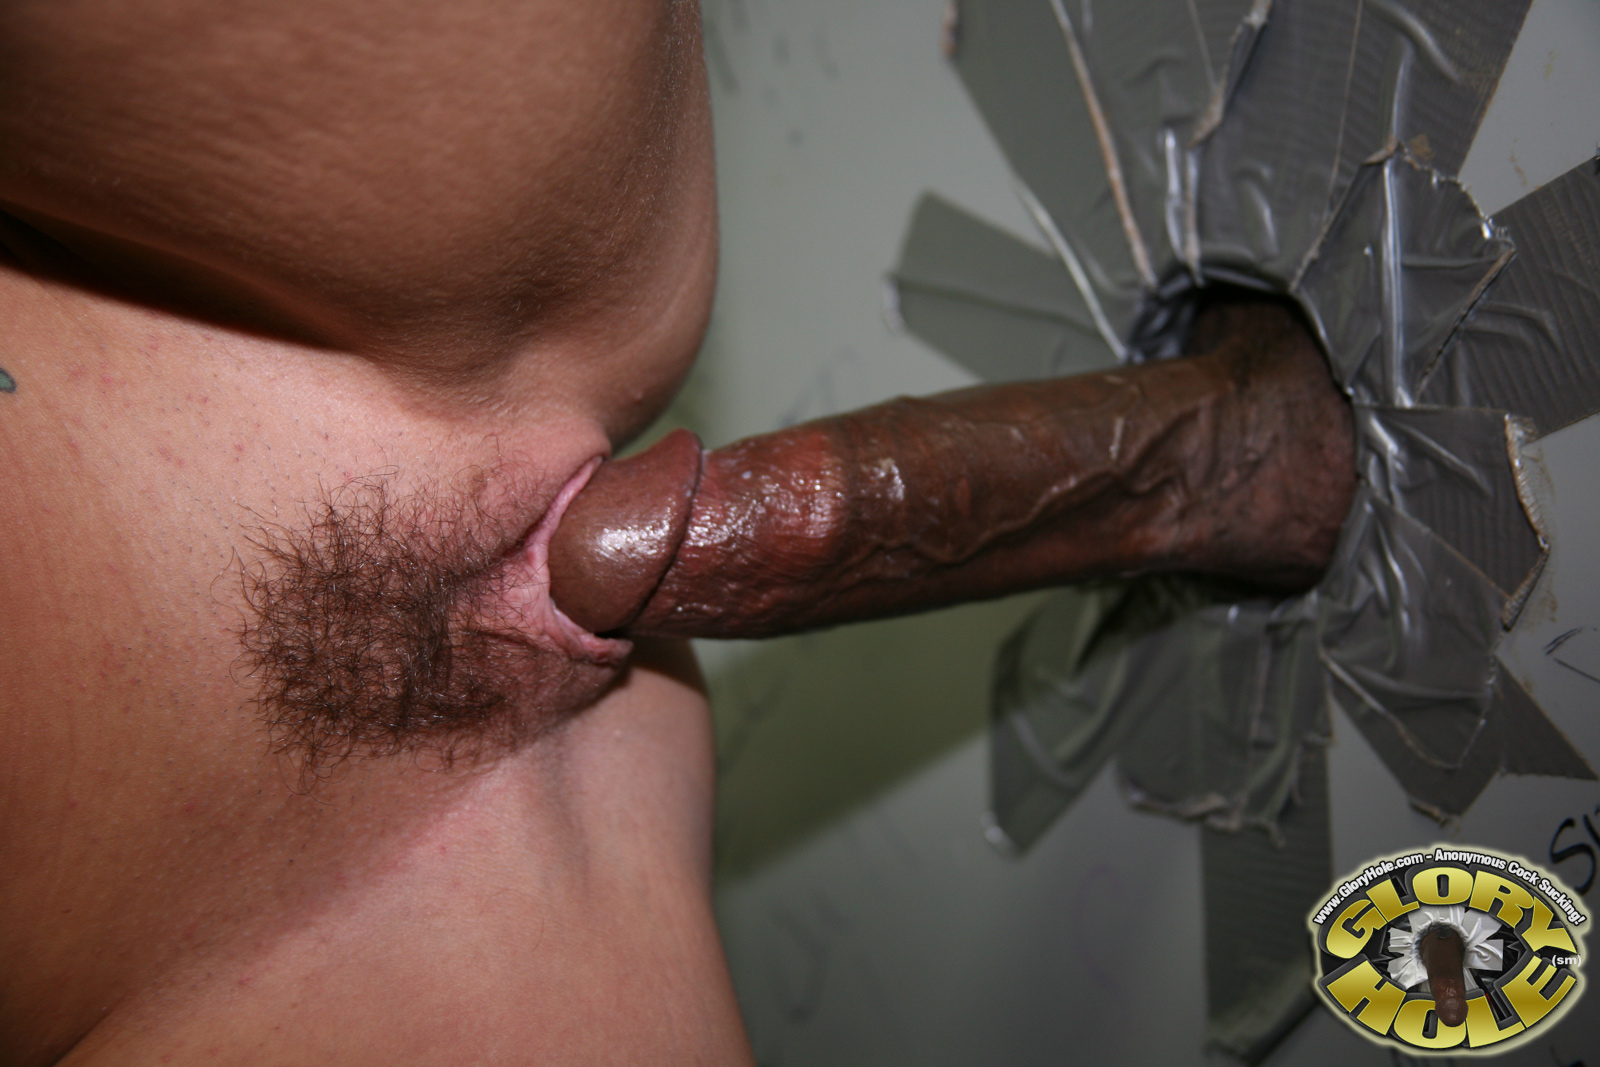 d sex fuck glory hole